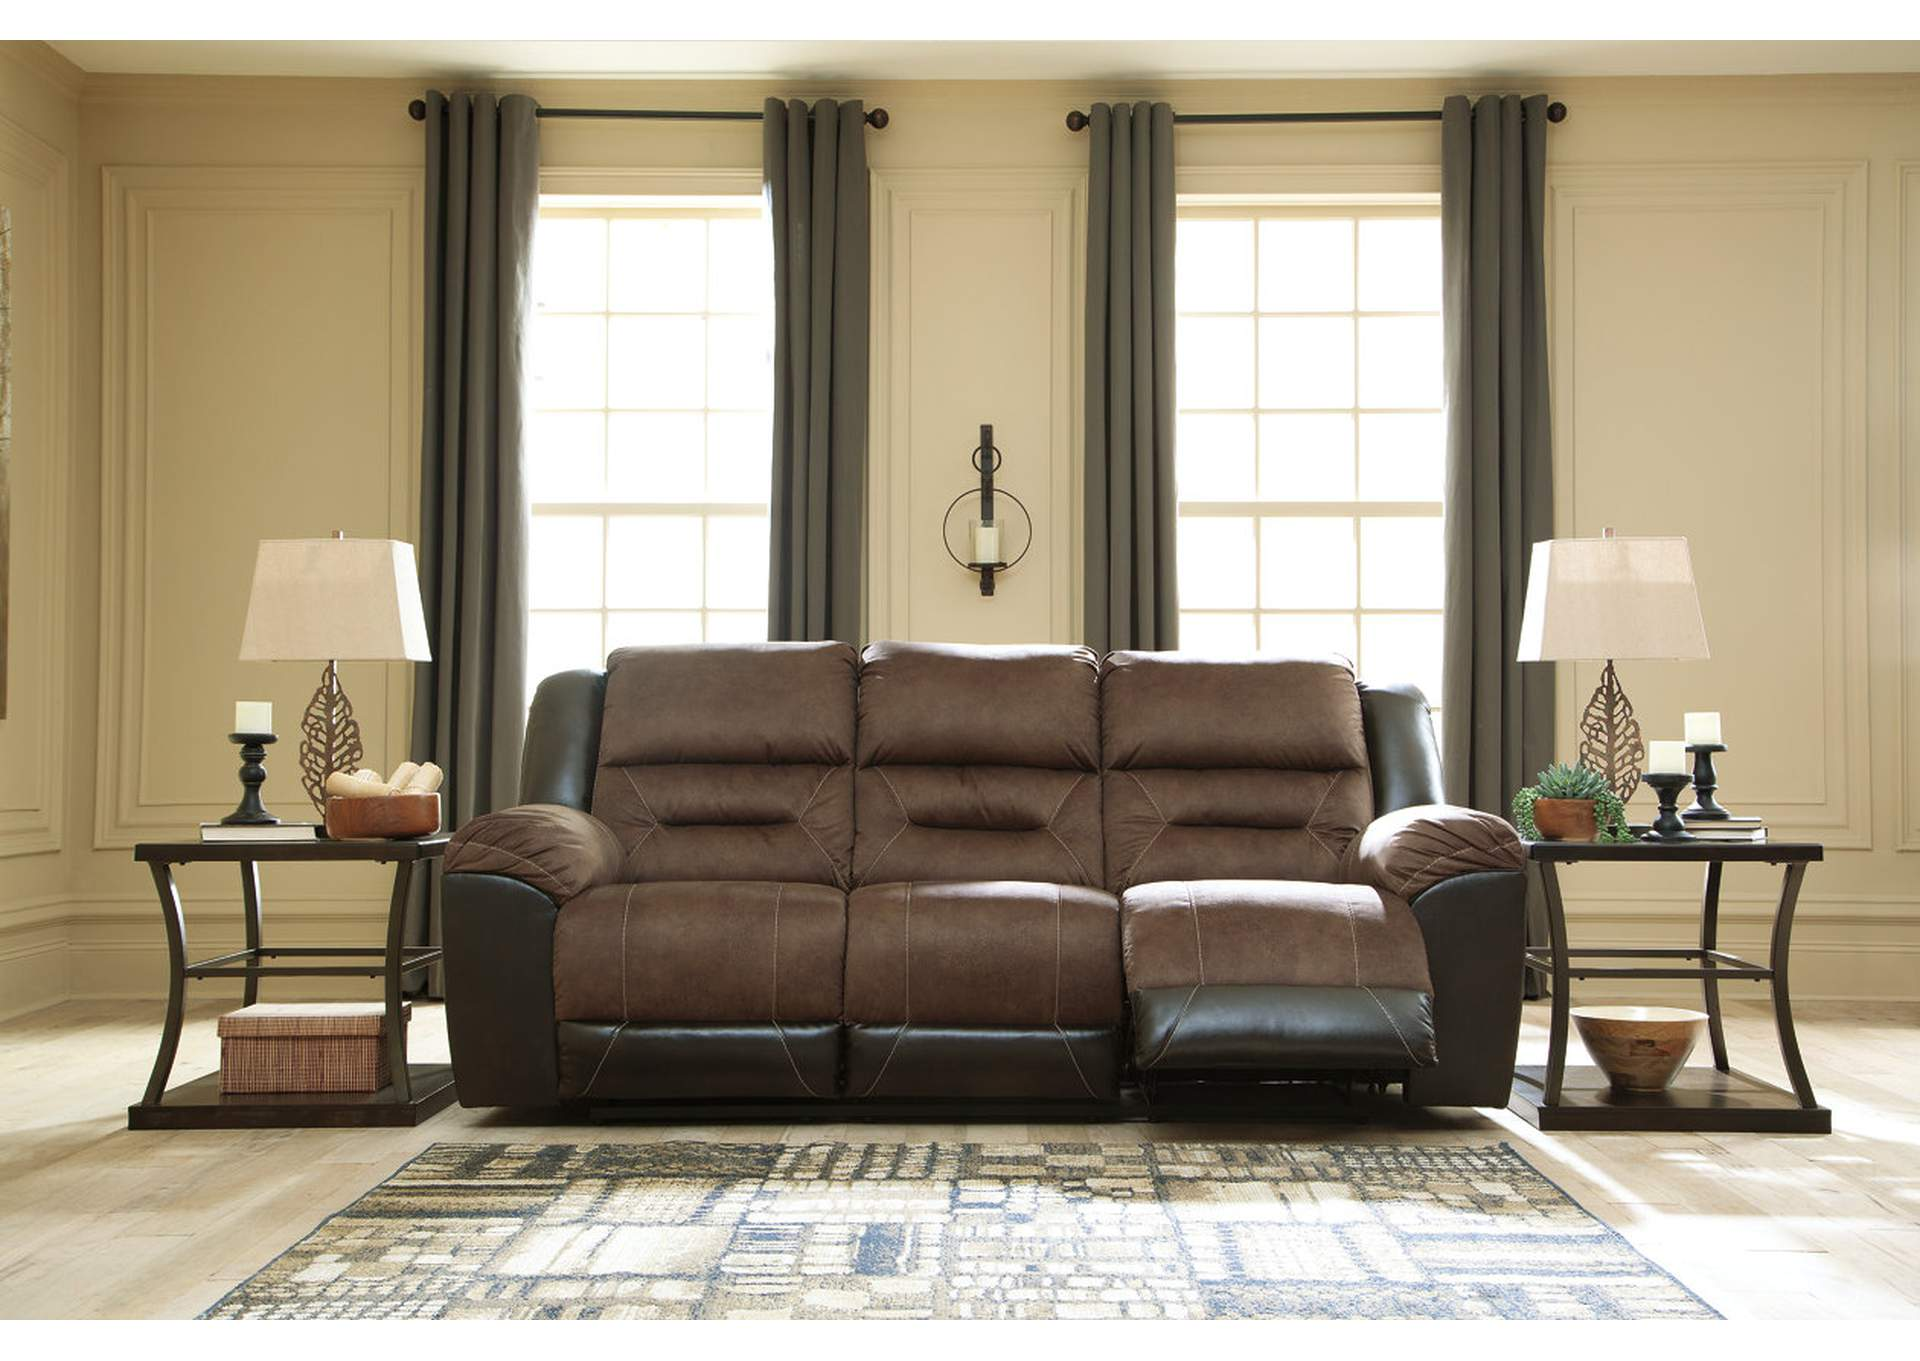 Earhart Chestnut Reclining Sofa,Signature Design By Ashley